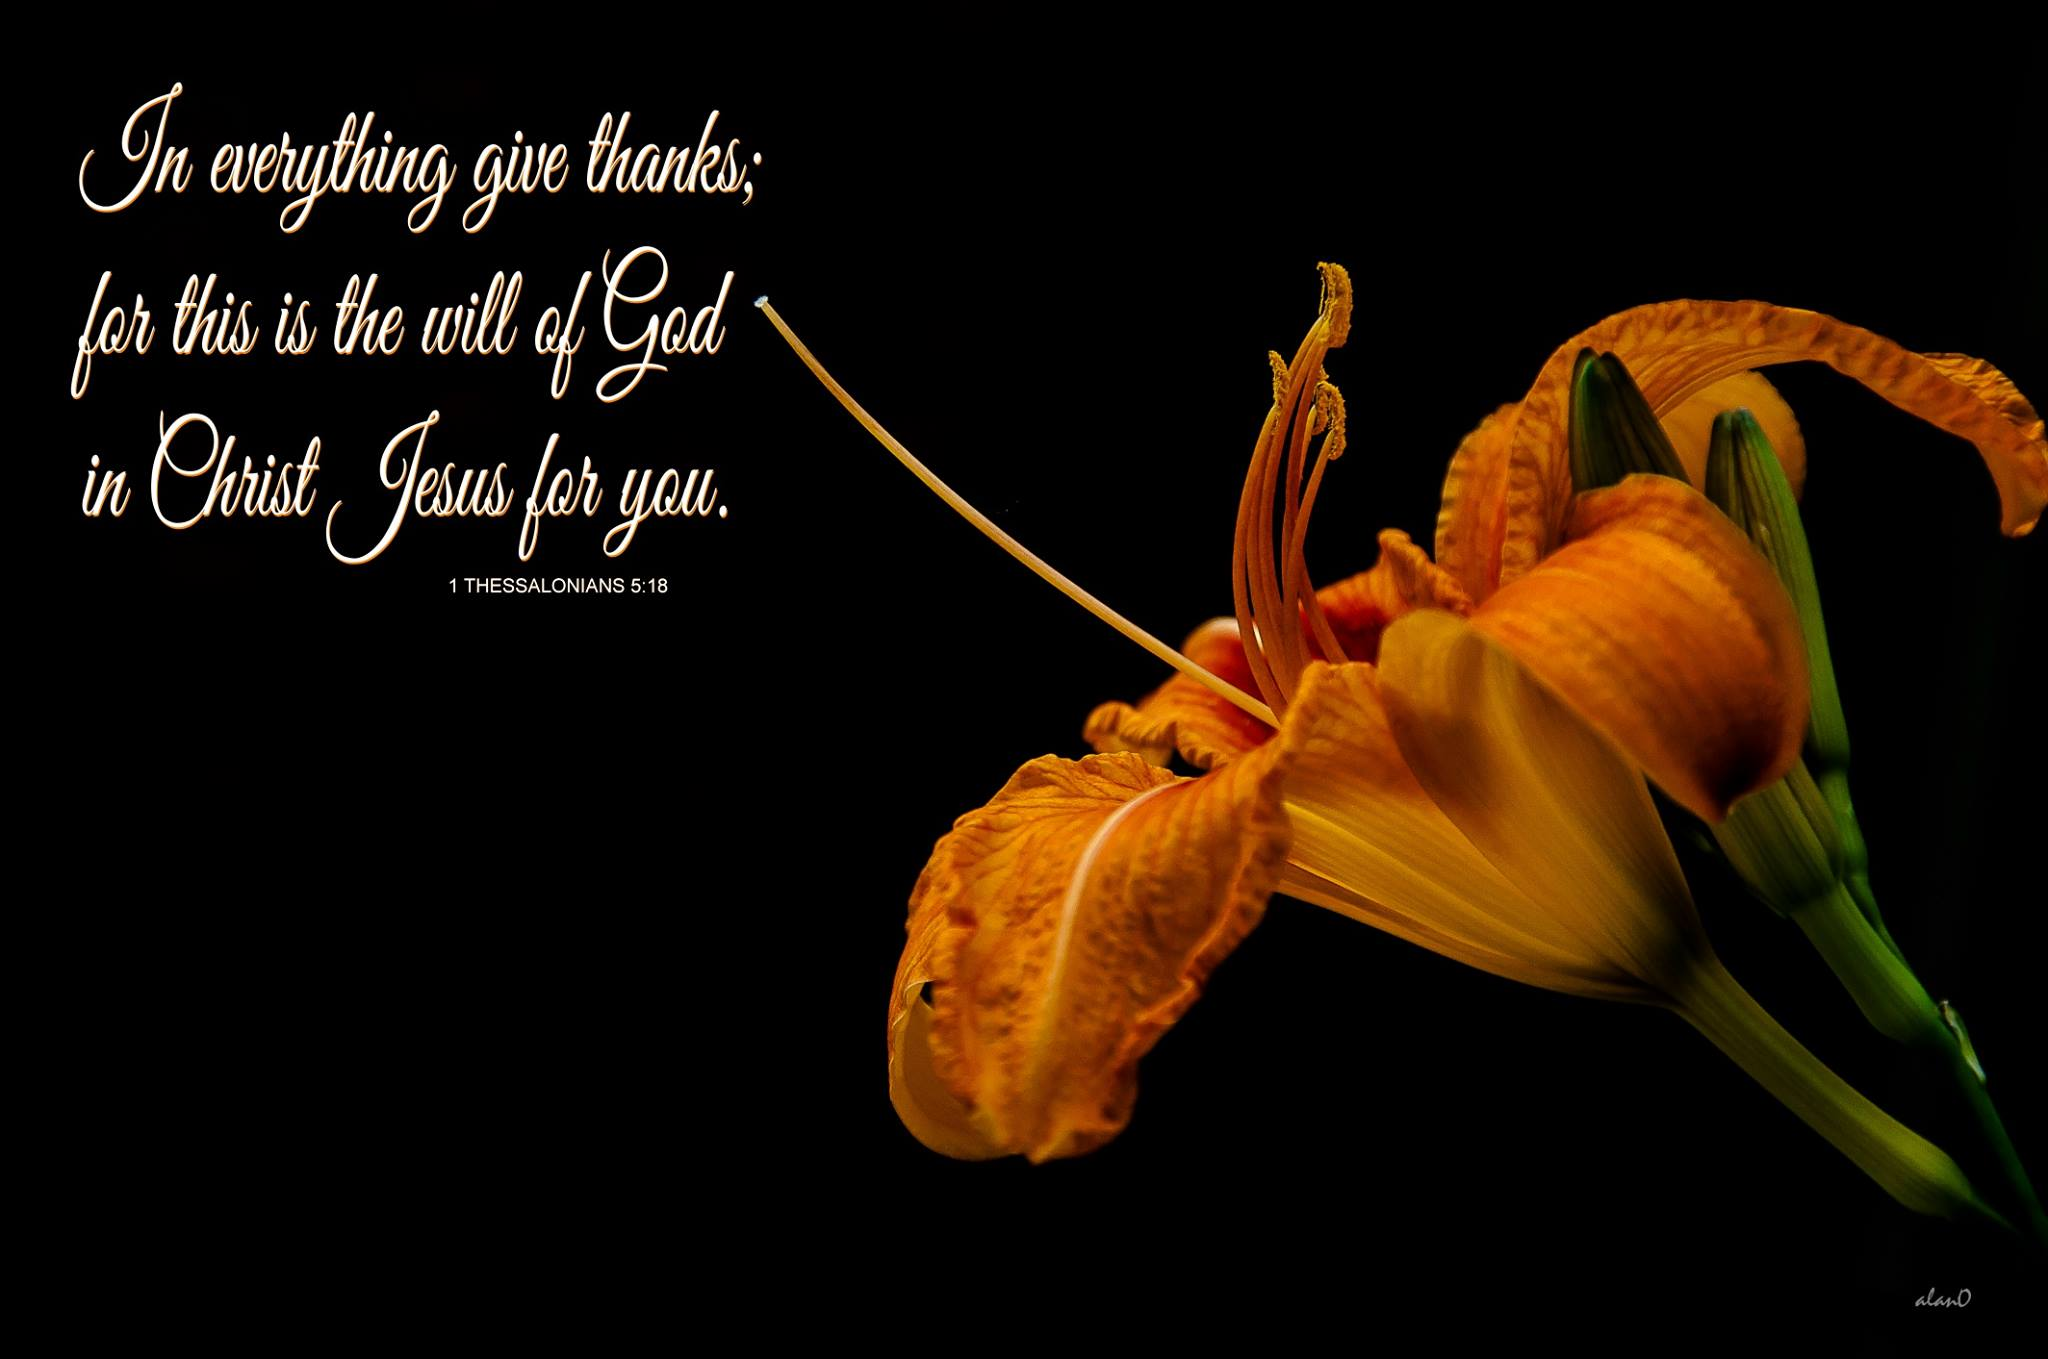 1 Thessalonians 5:18 In everything give thanks; for this is the will of God in Christ Jesus for you